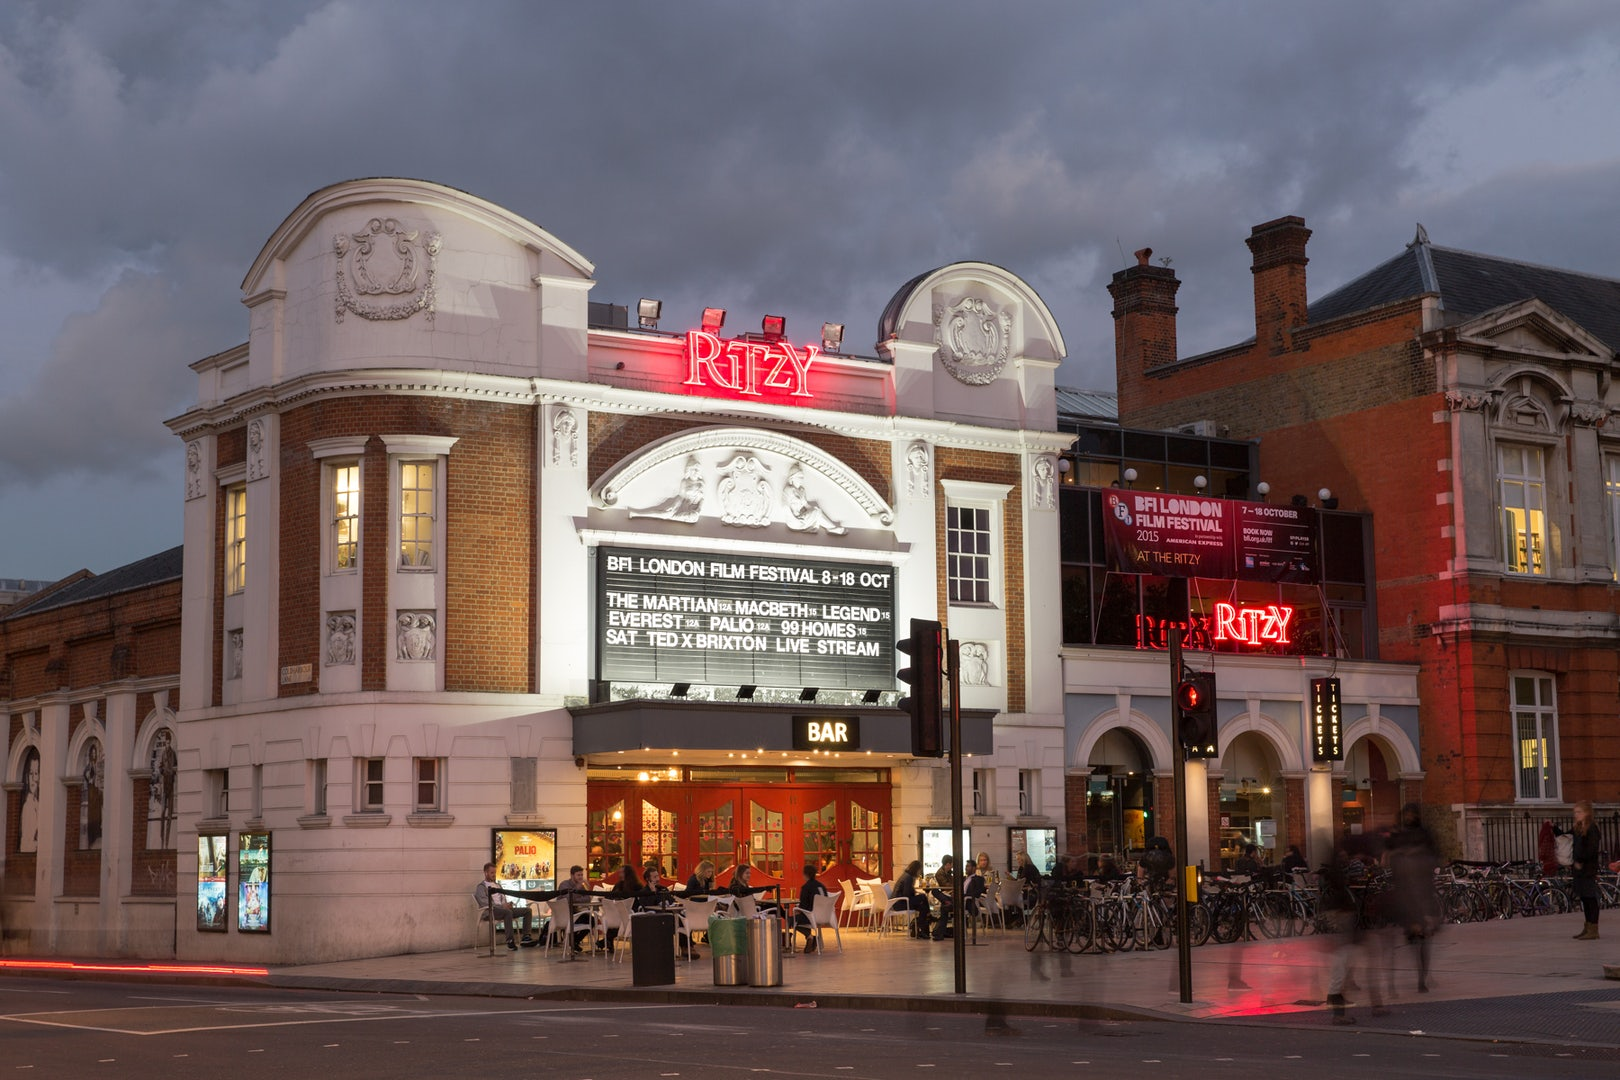 front side of the Brixton Ritzy cinema theatre